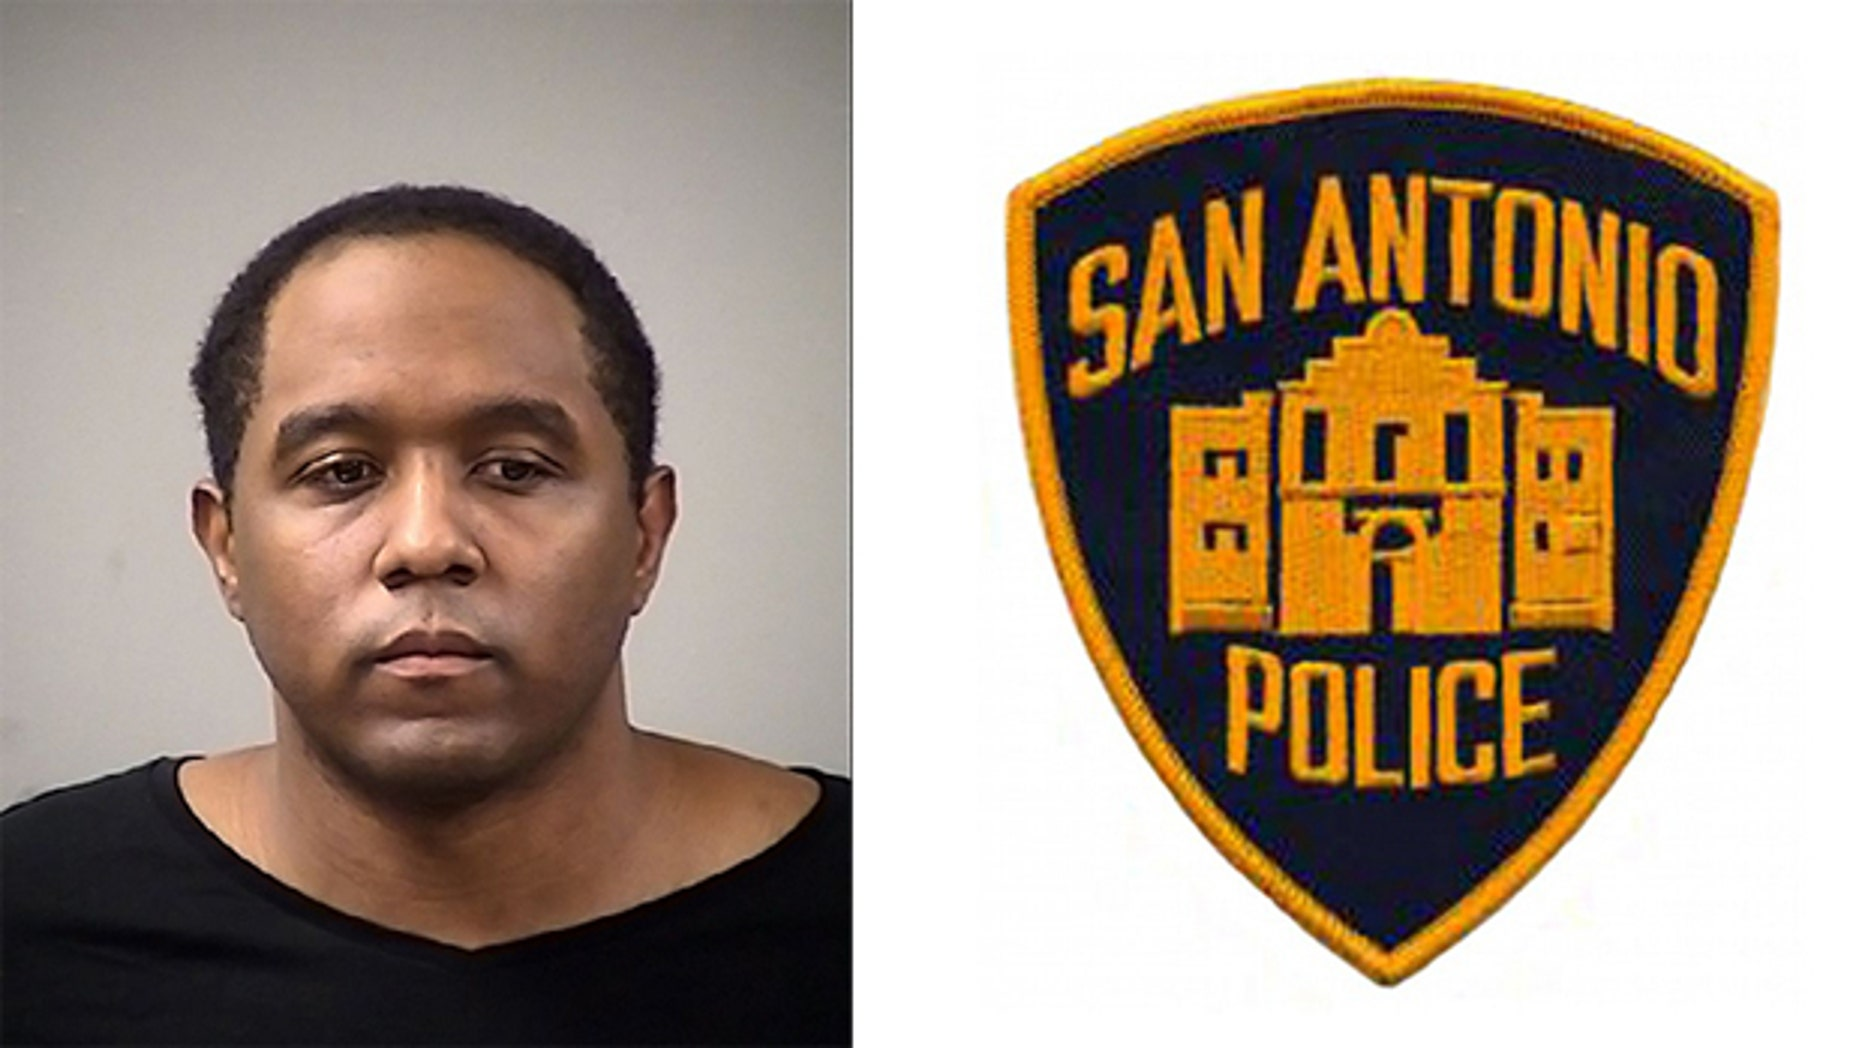 Antronie Scott, 36, was shot and killed Feb. 4 by an officer from the San Antonio Police Department.